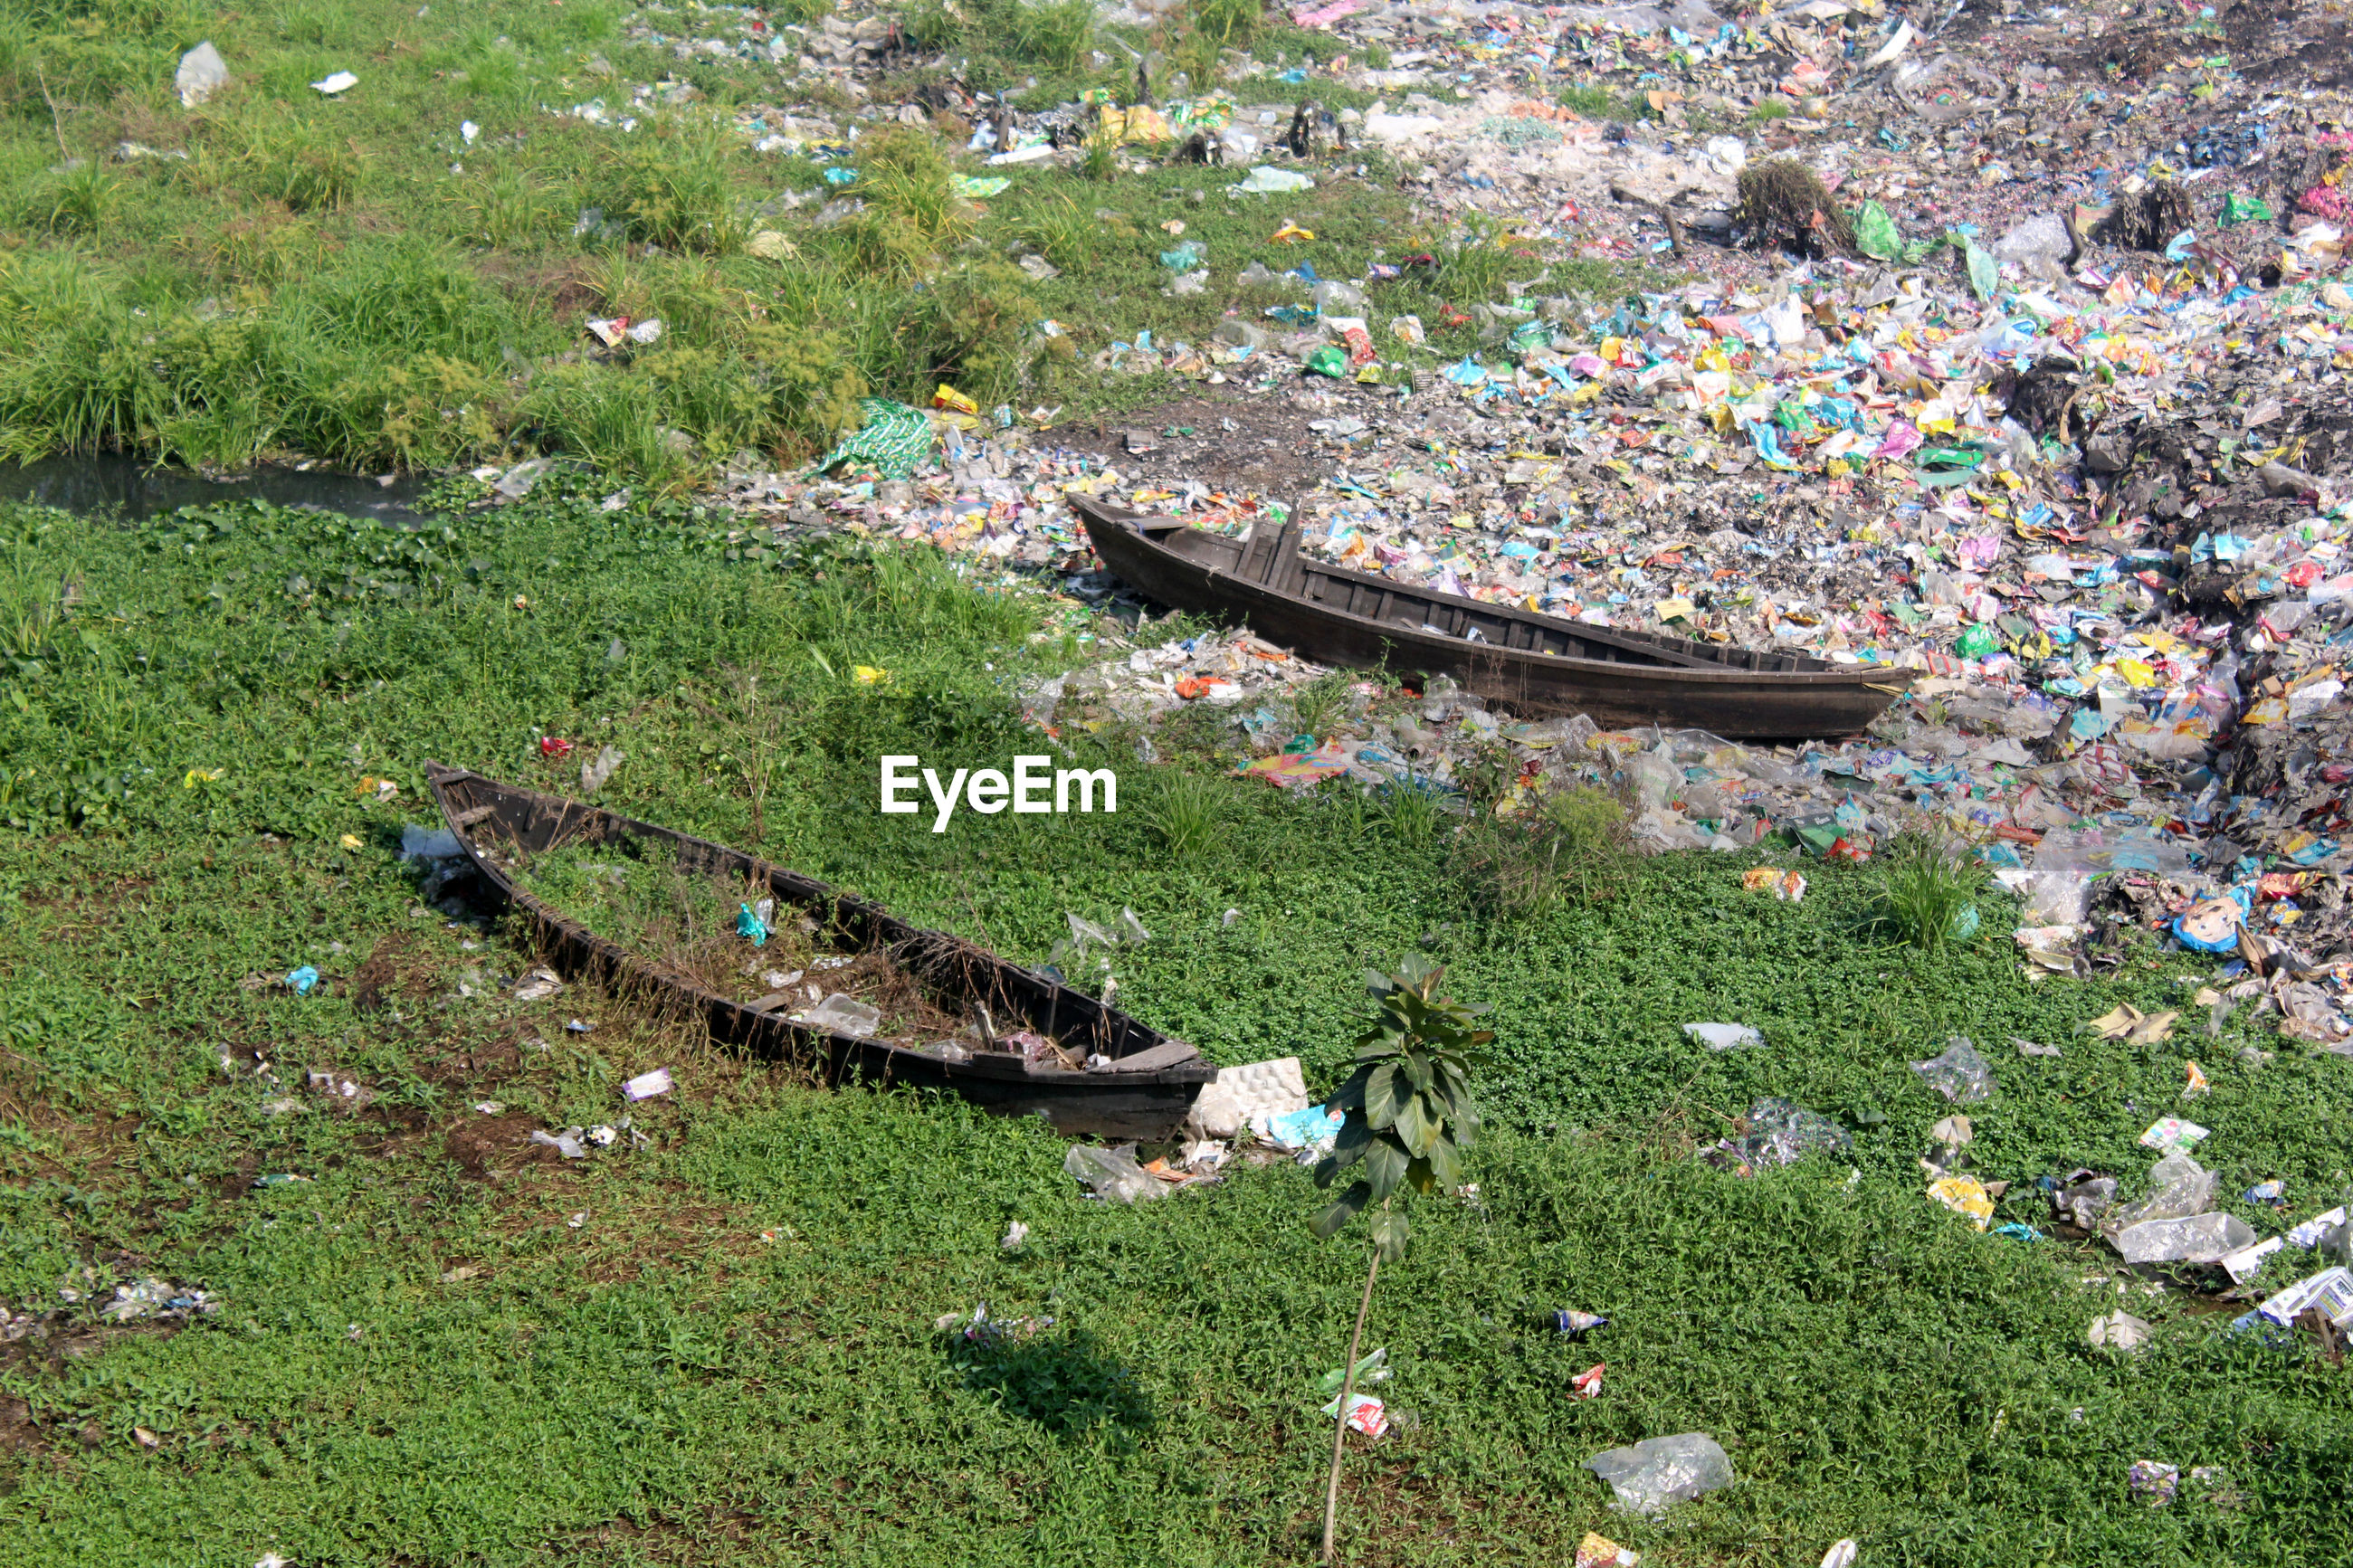 High angle view of boat and garbage on land